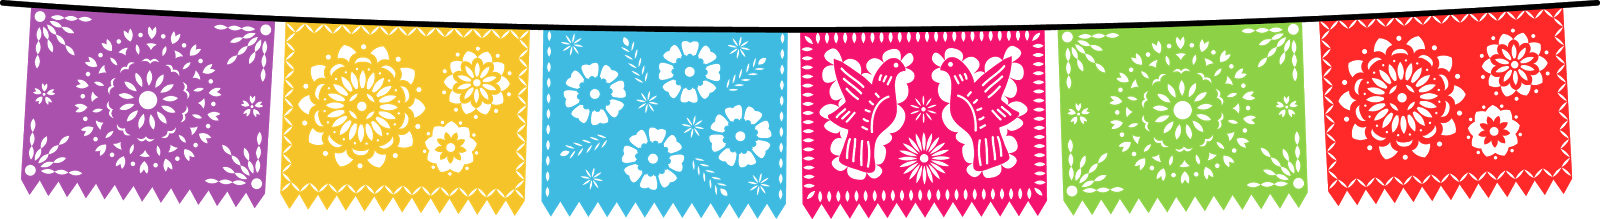 Mexico clipart fiesta.  images of transparent